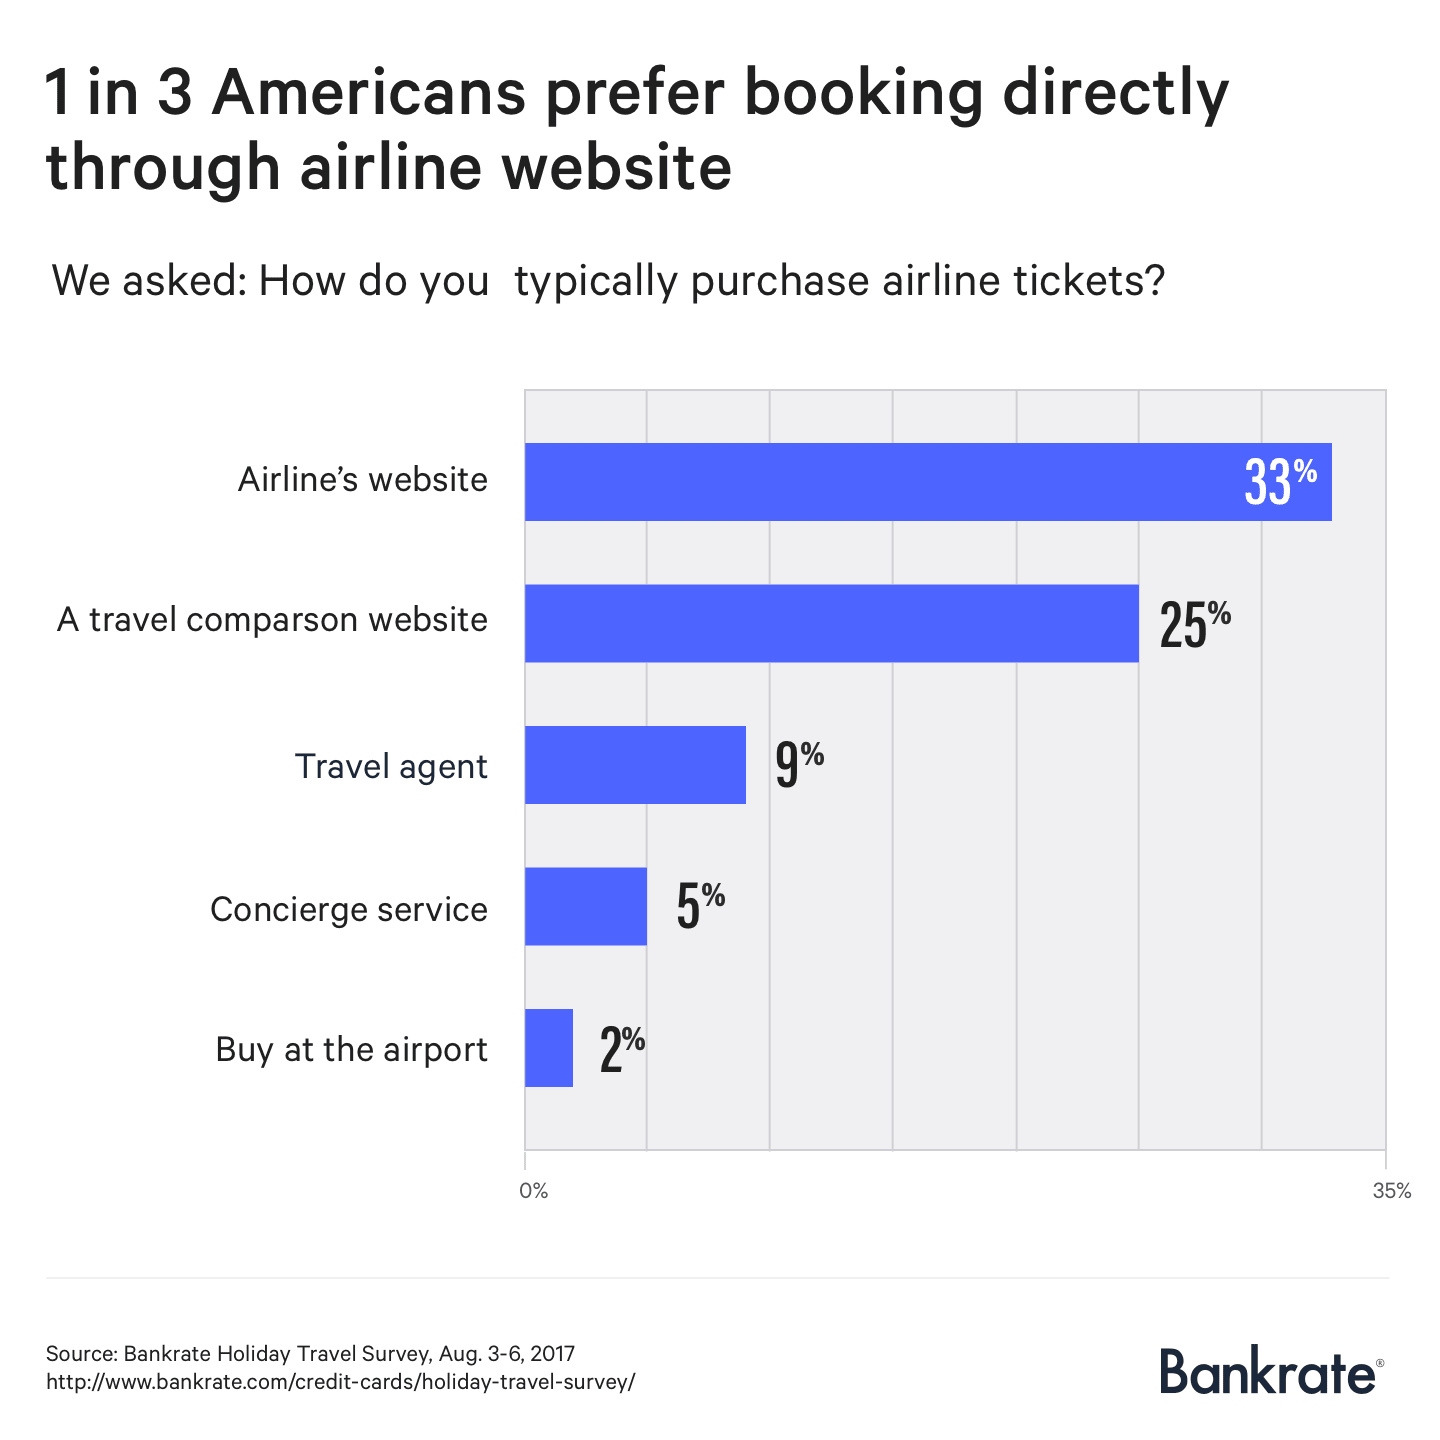 1 in 3 Americans prefer booking directly through airline website